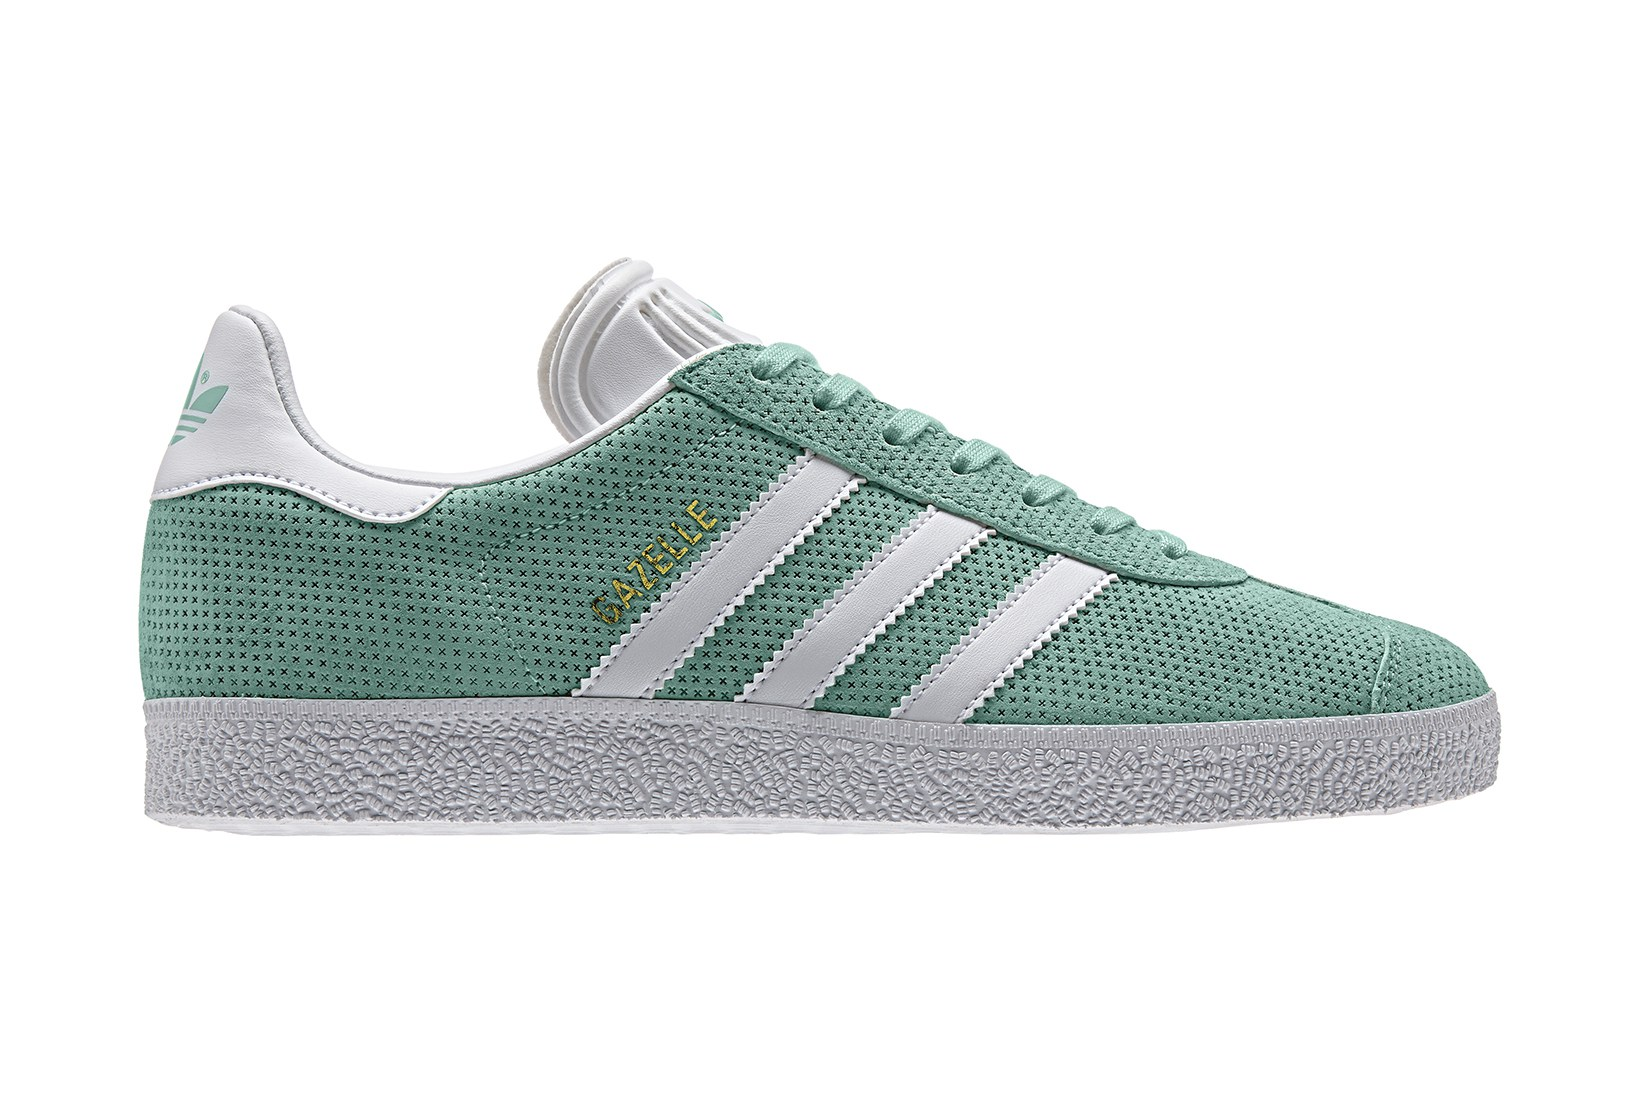 adidas-originals-gazelle-perforation-pack-3